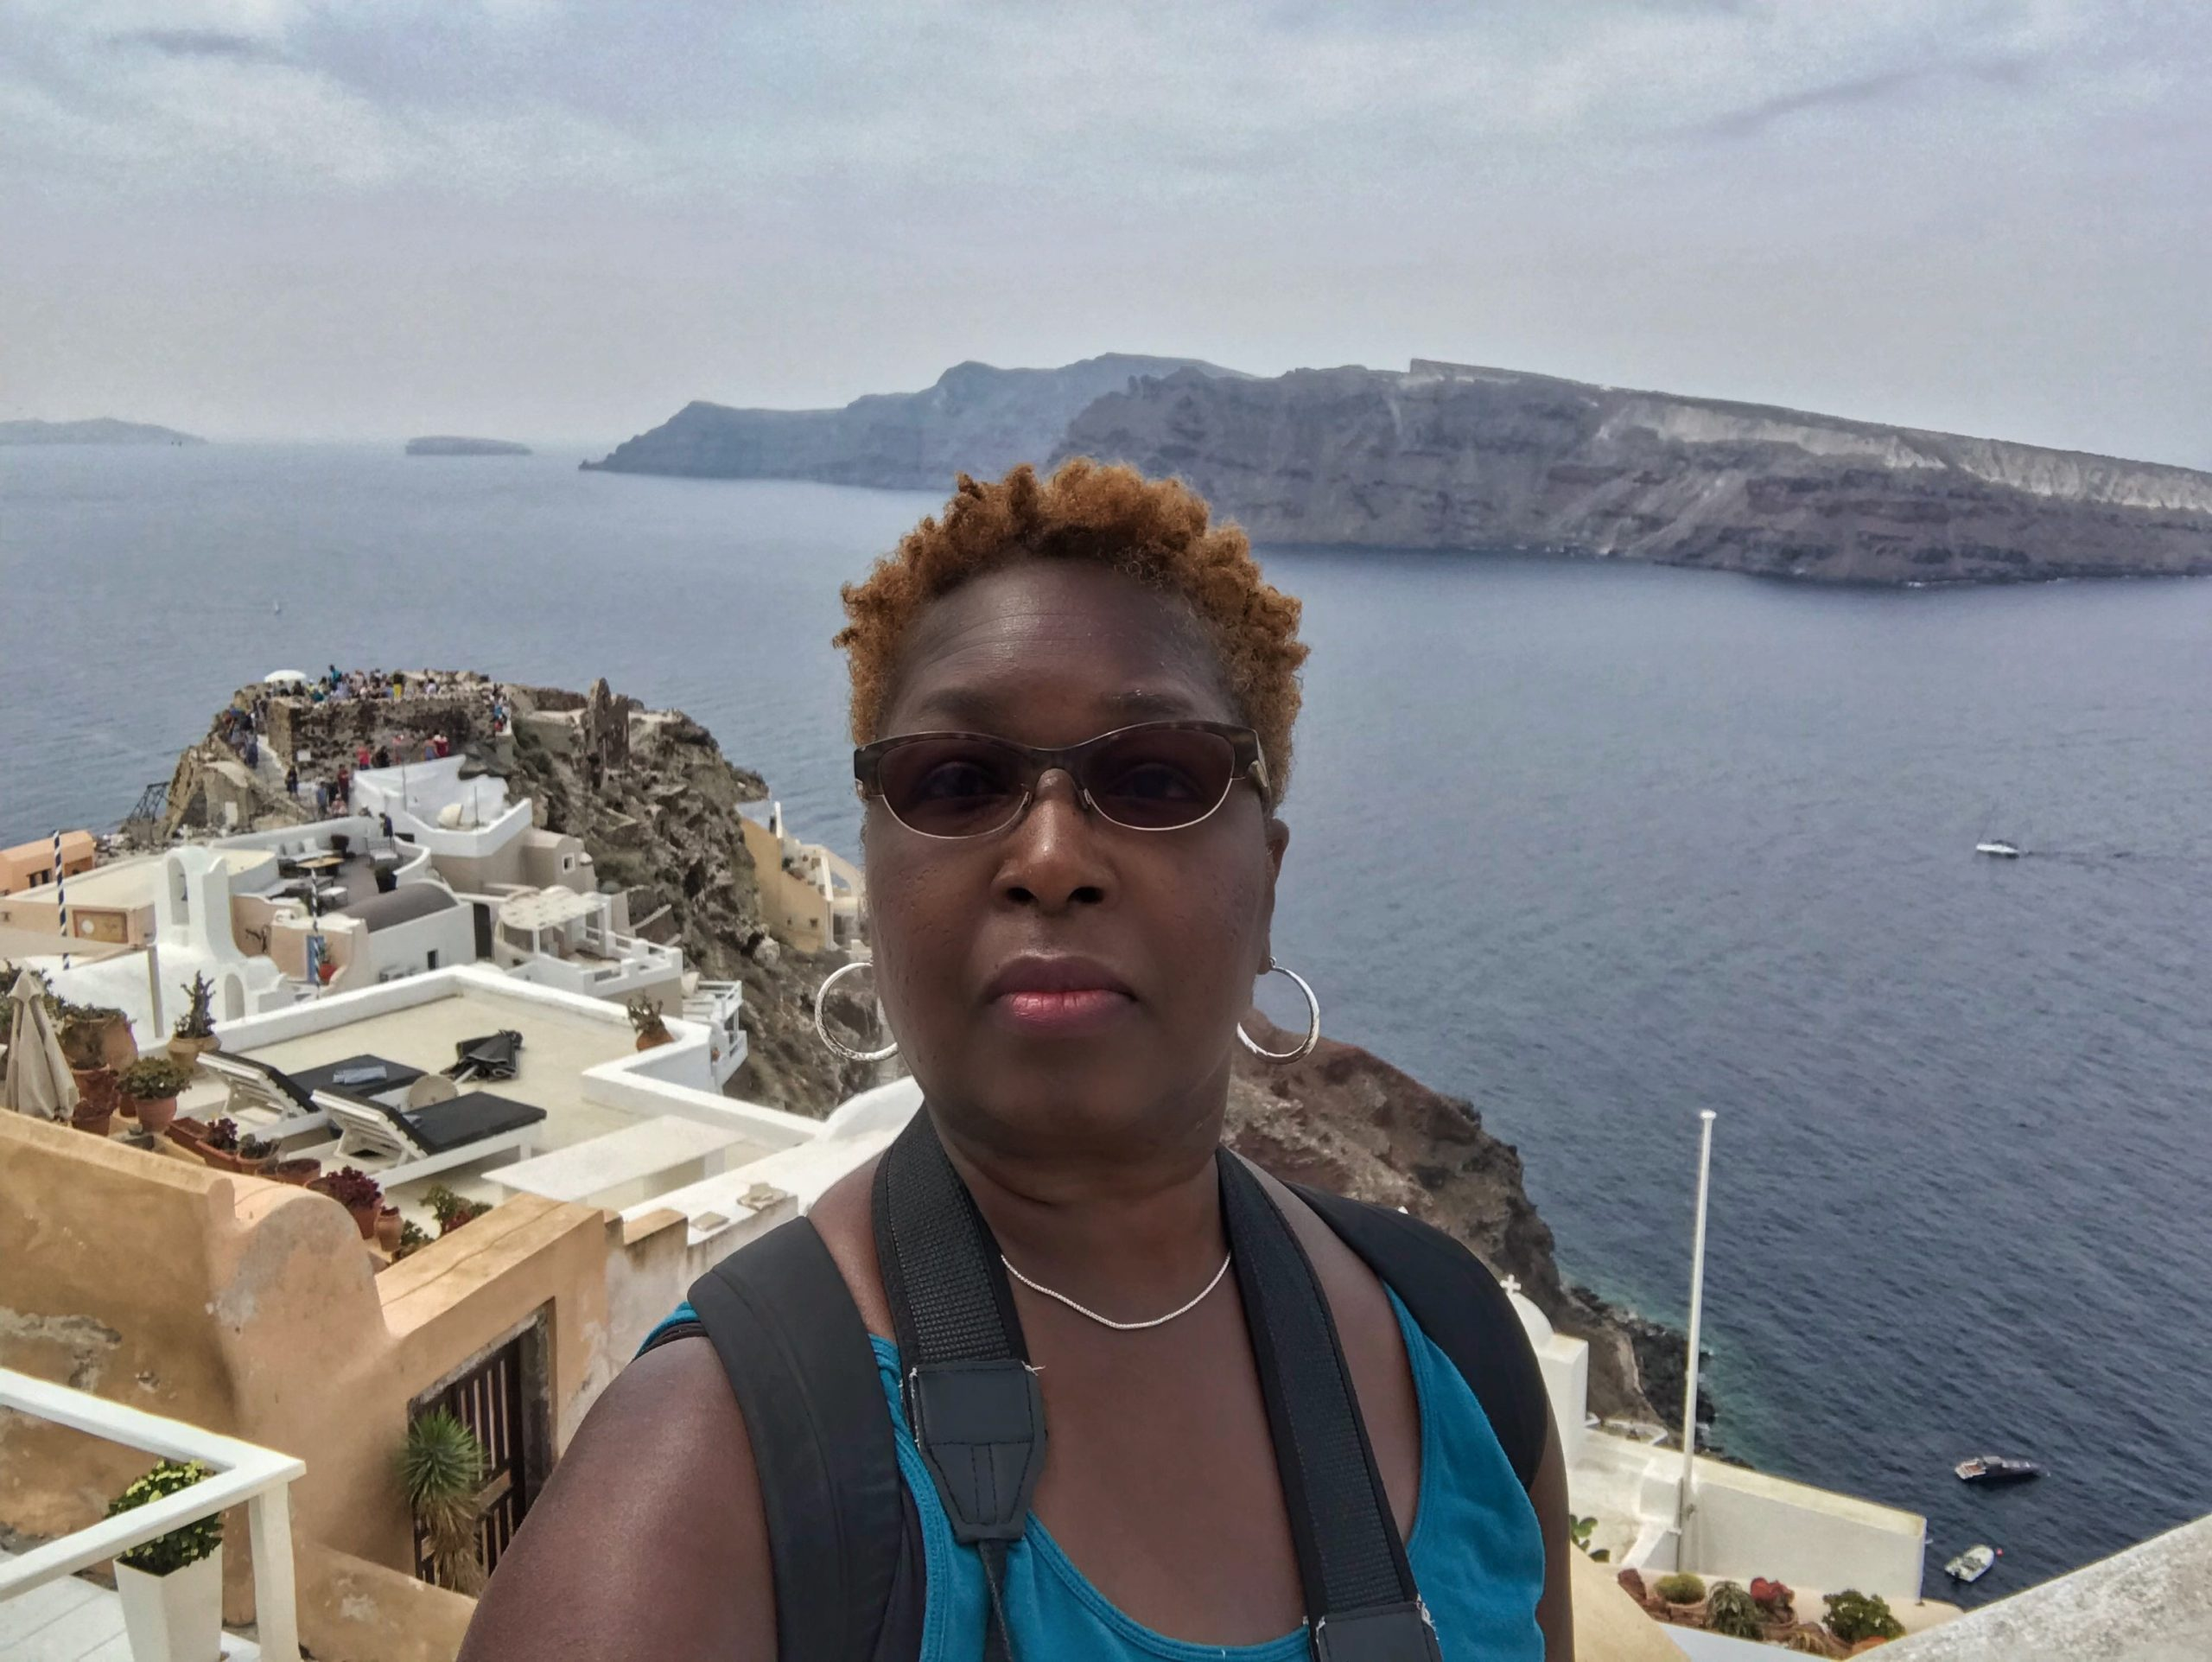 Danielle Lewis, owner of SelfishMe Travel LLC, in Oia, Santorini, Greece - image taken with an iPhone 7